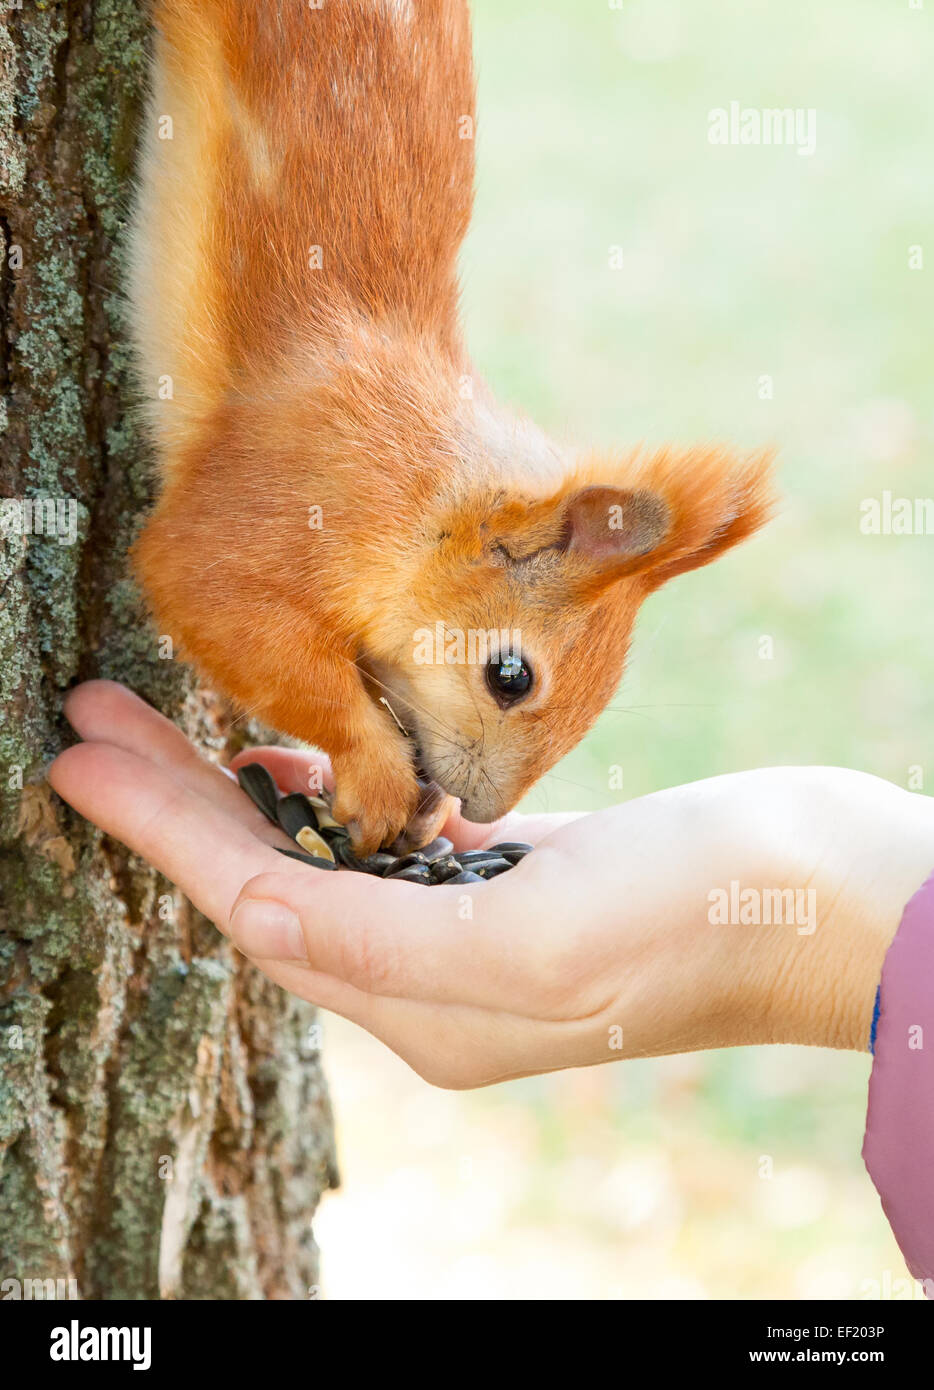 Wild red european squirrel eating from hand - Stock Image